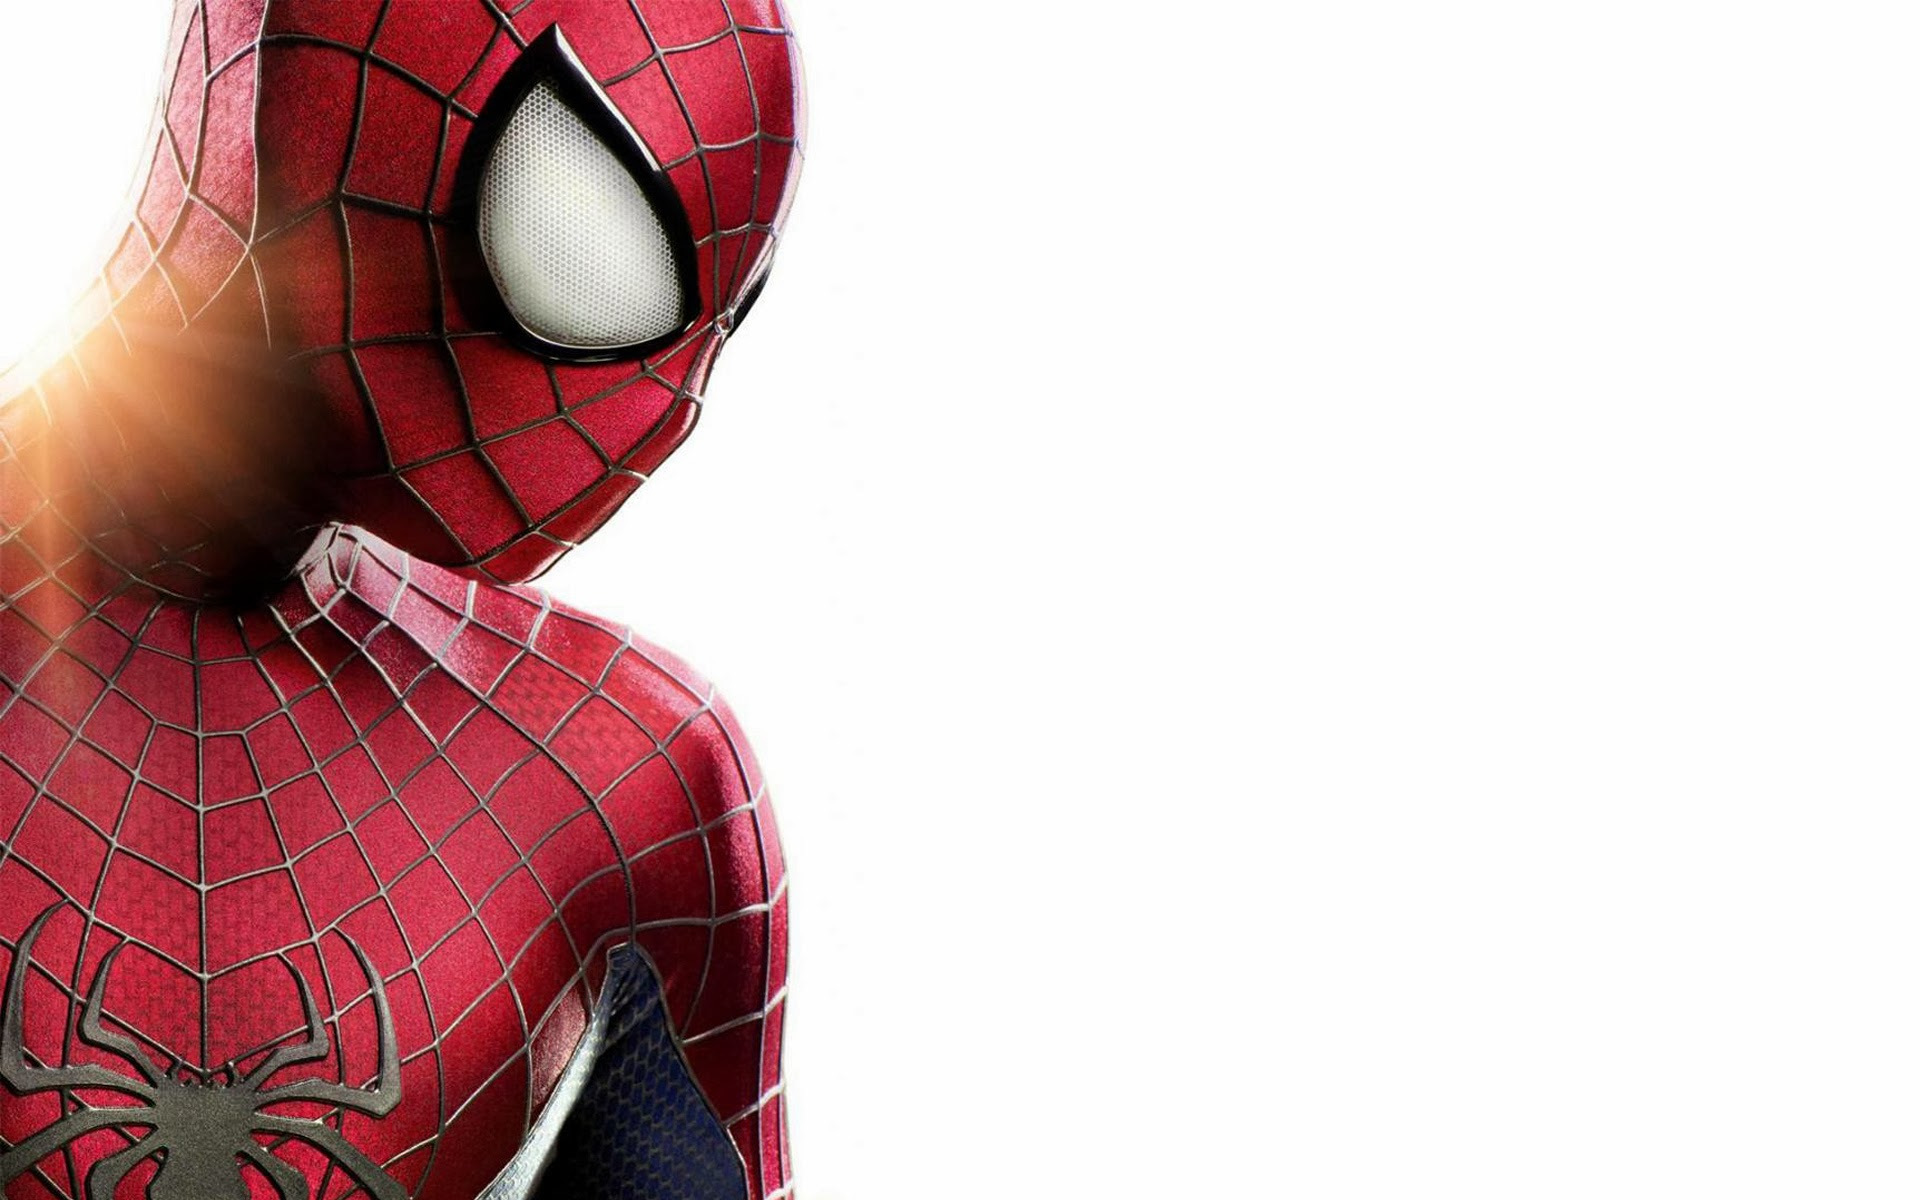 Amazing Wallpaper High Resolution Spiderman - spider-man-images_114452  Graphic_23787.jpg